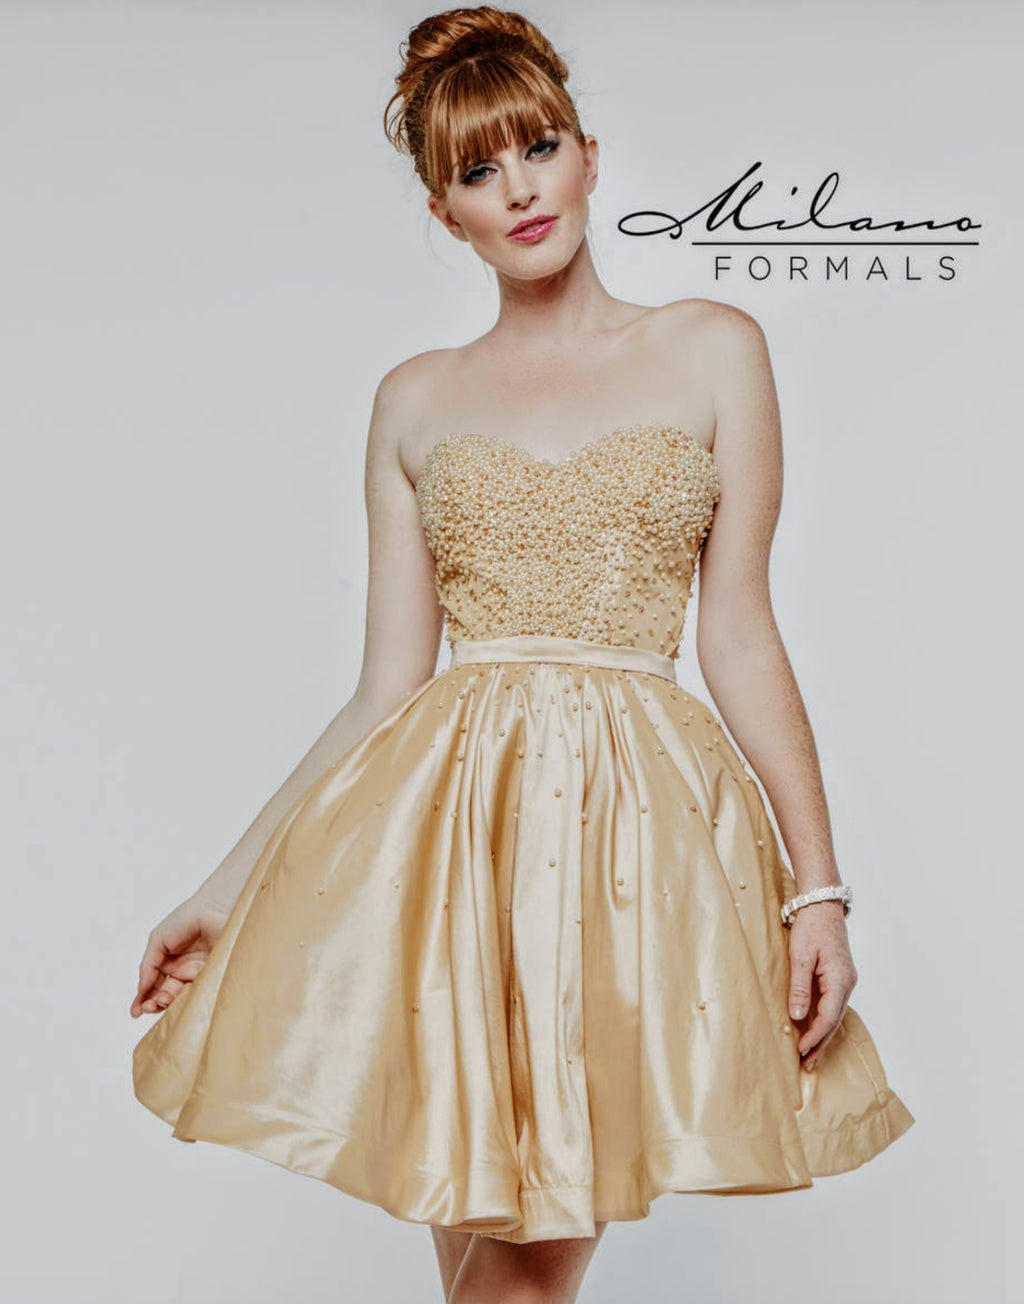 49b146534b9 Beautiful Champagne Milano Homecoming Dress - DressbytheBest